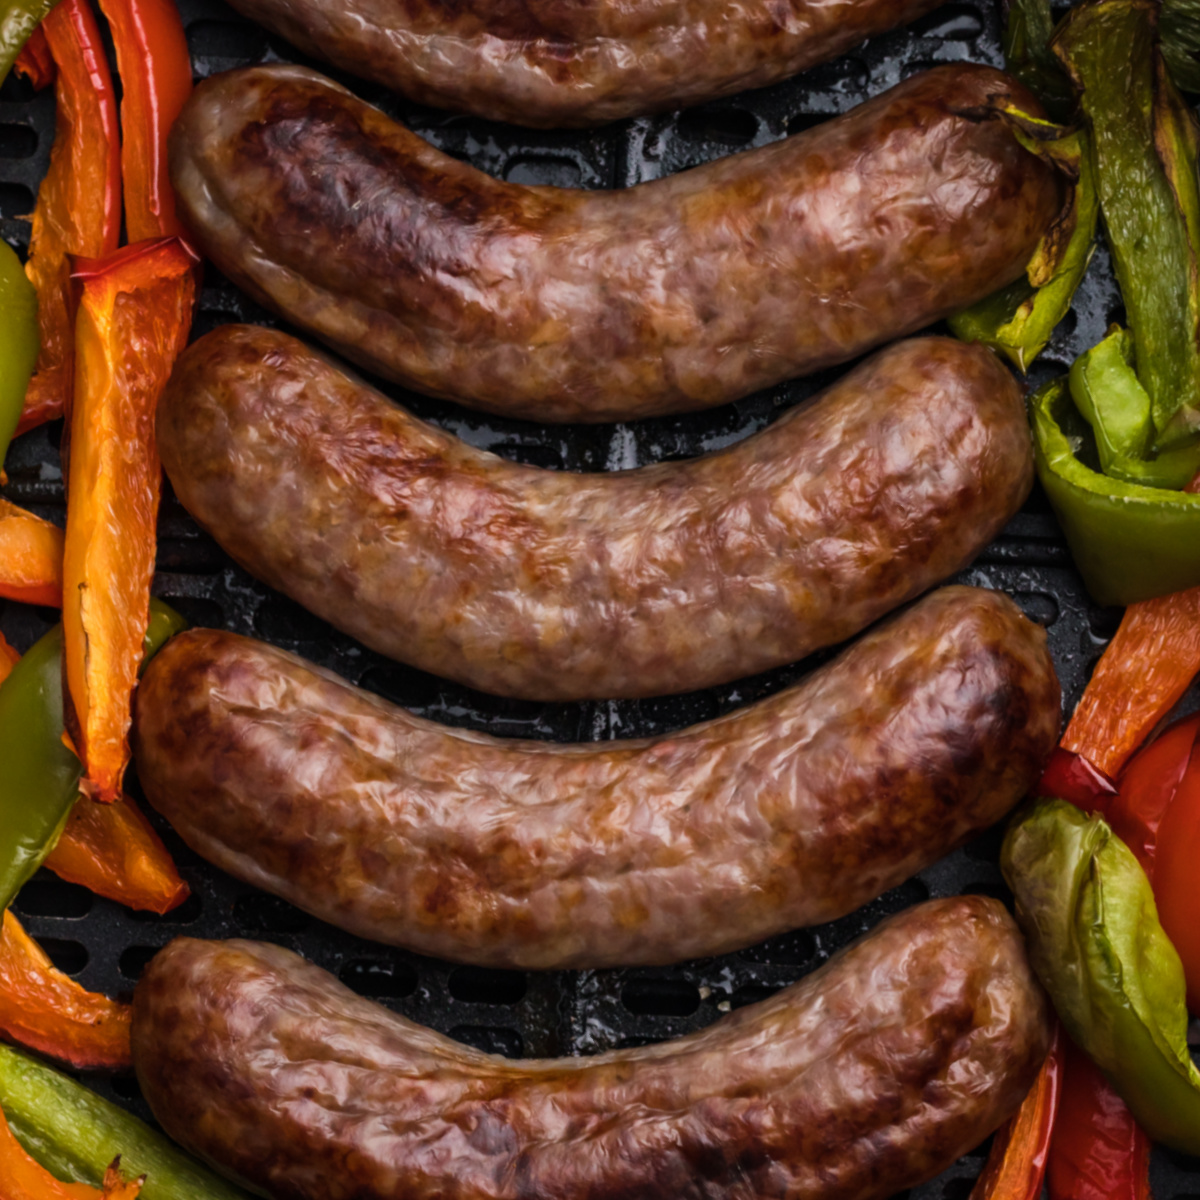 Brats and peppers in the basket of the air fryer.